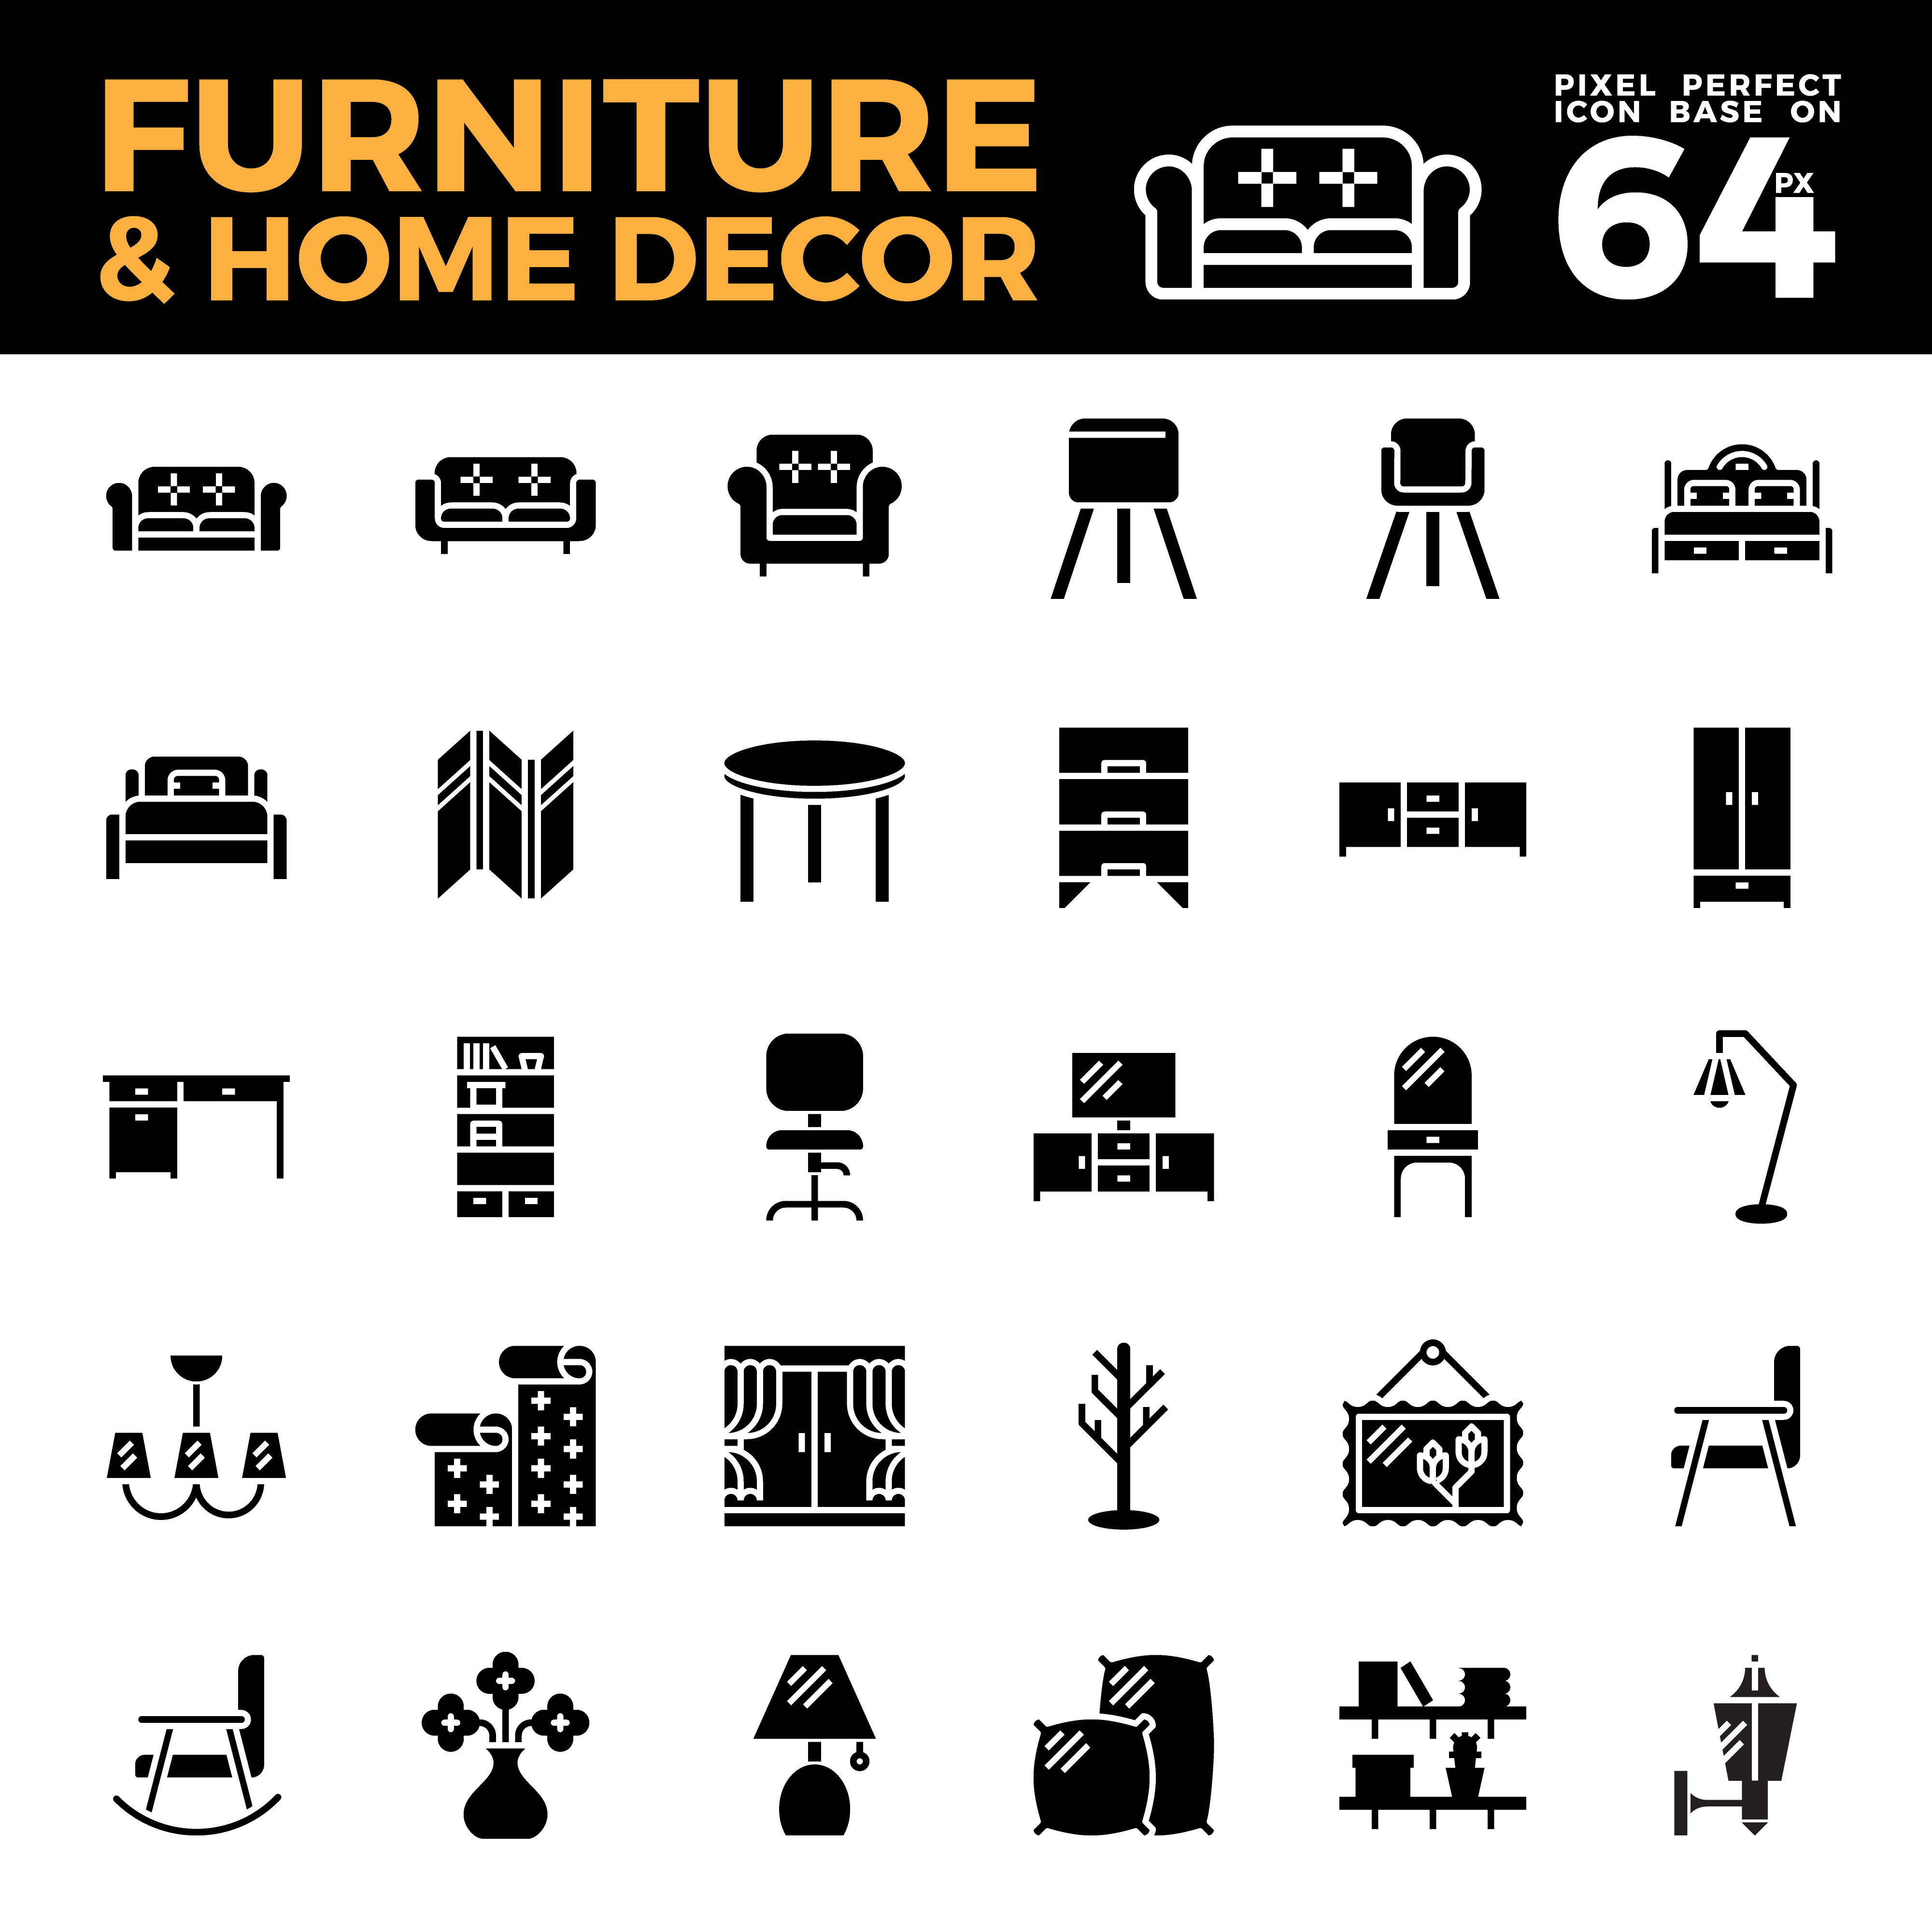 Furniture and home decor solid icon 658379 - Download Free ...